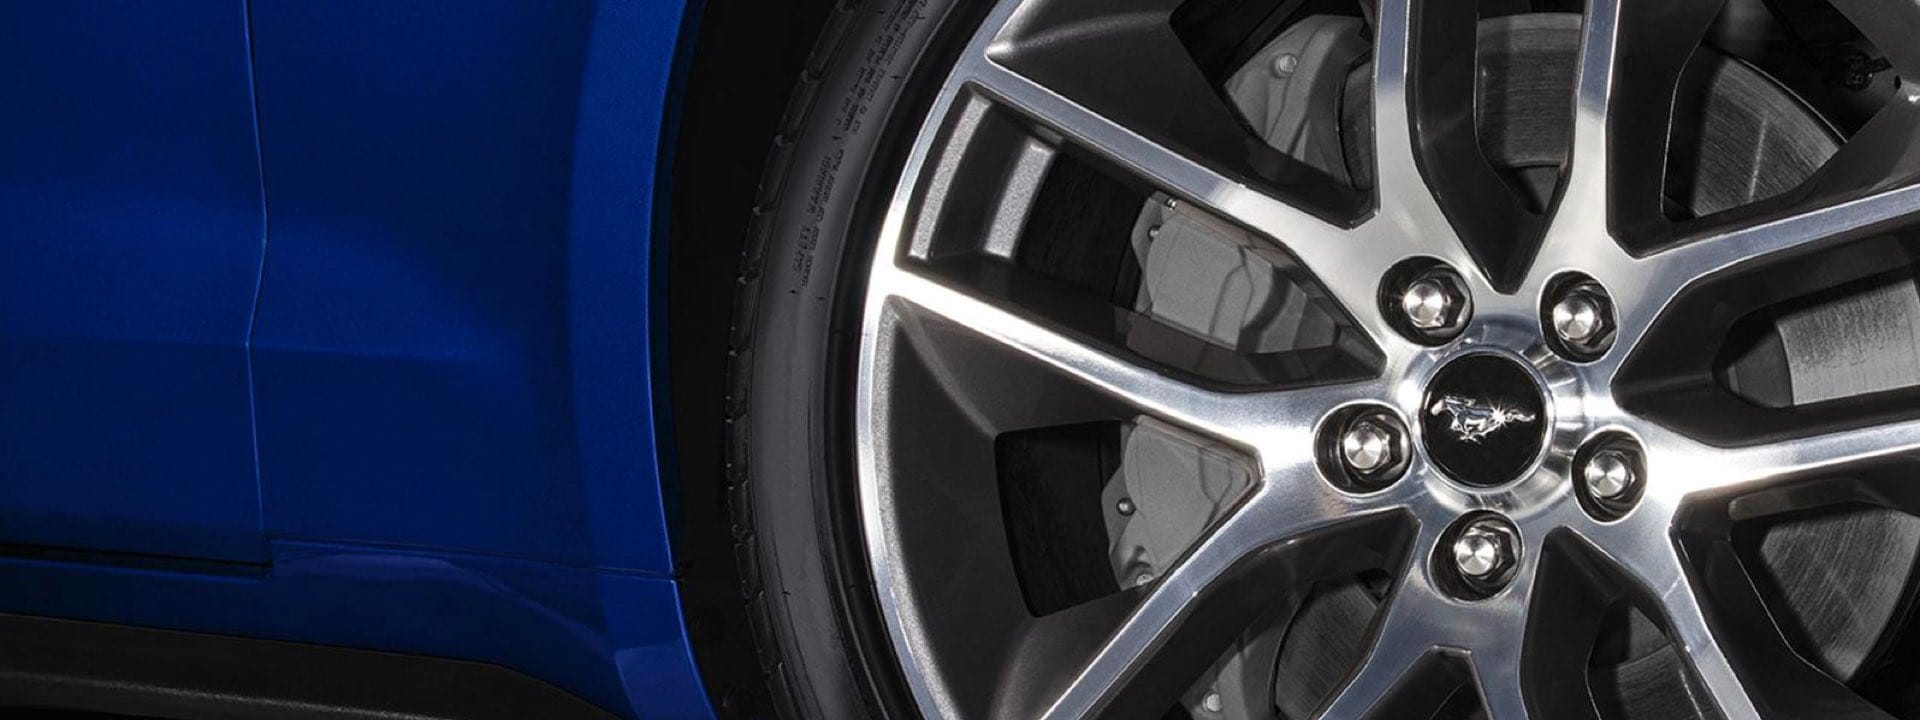 View of Ford Mustang rims